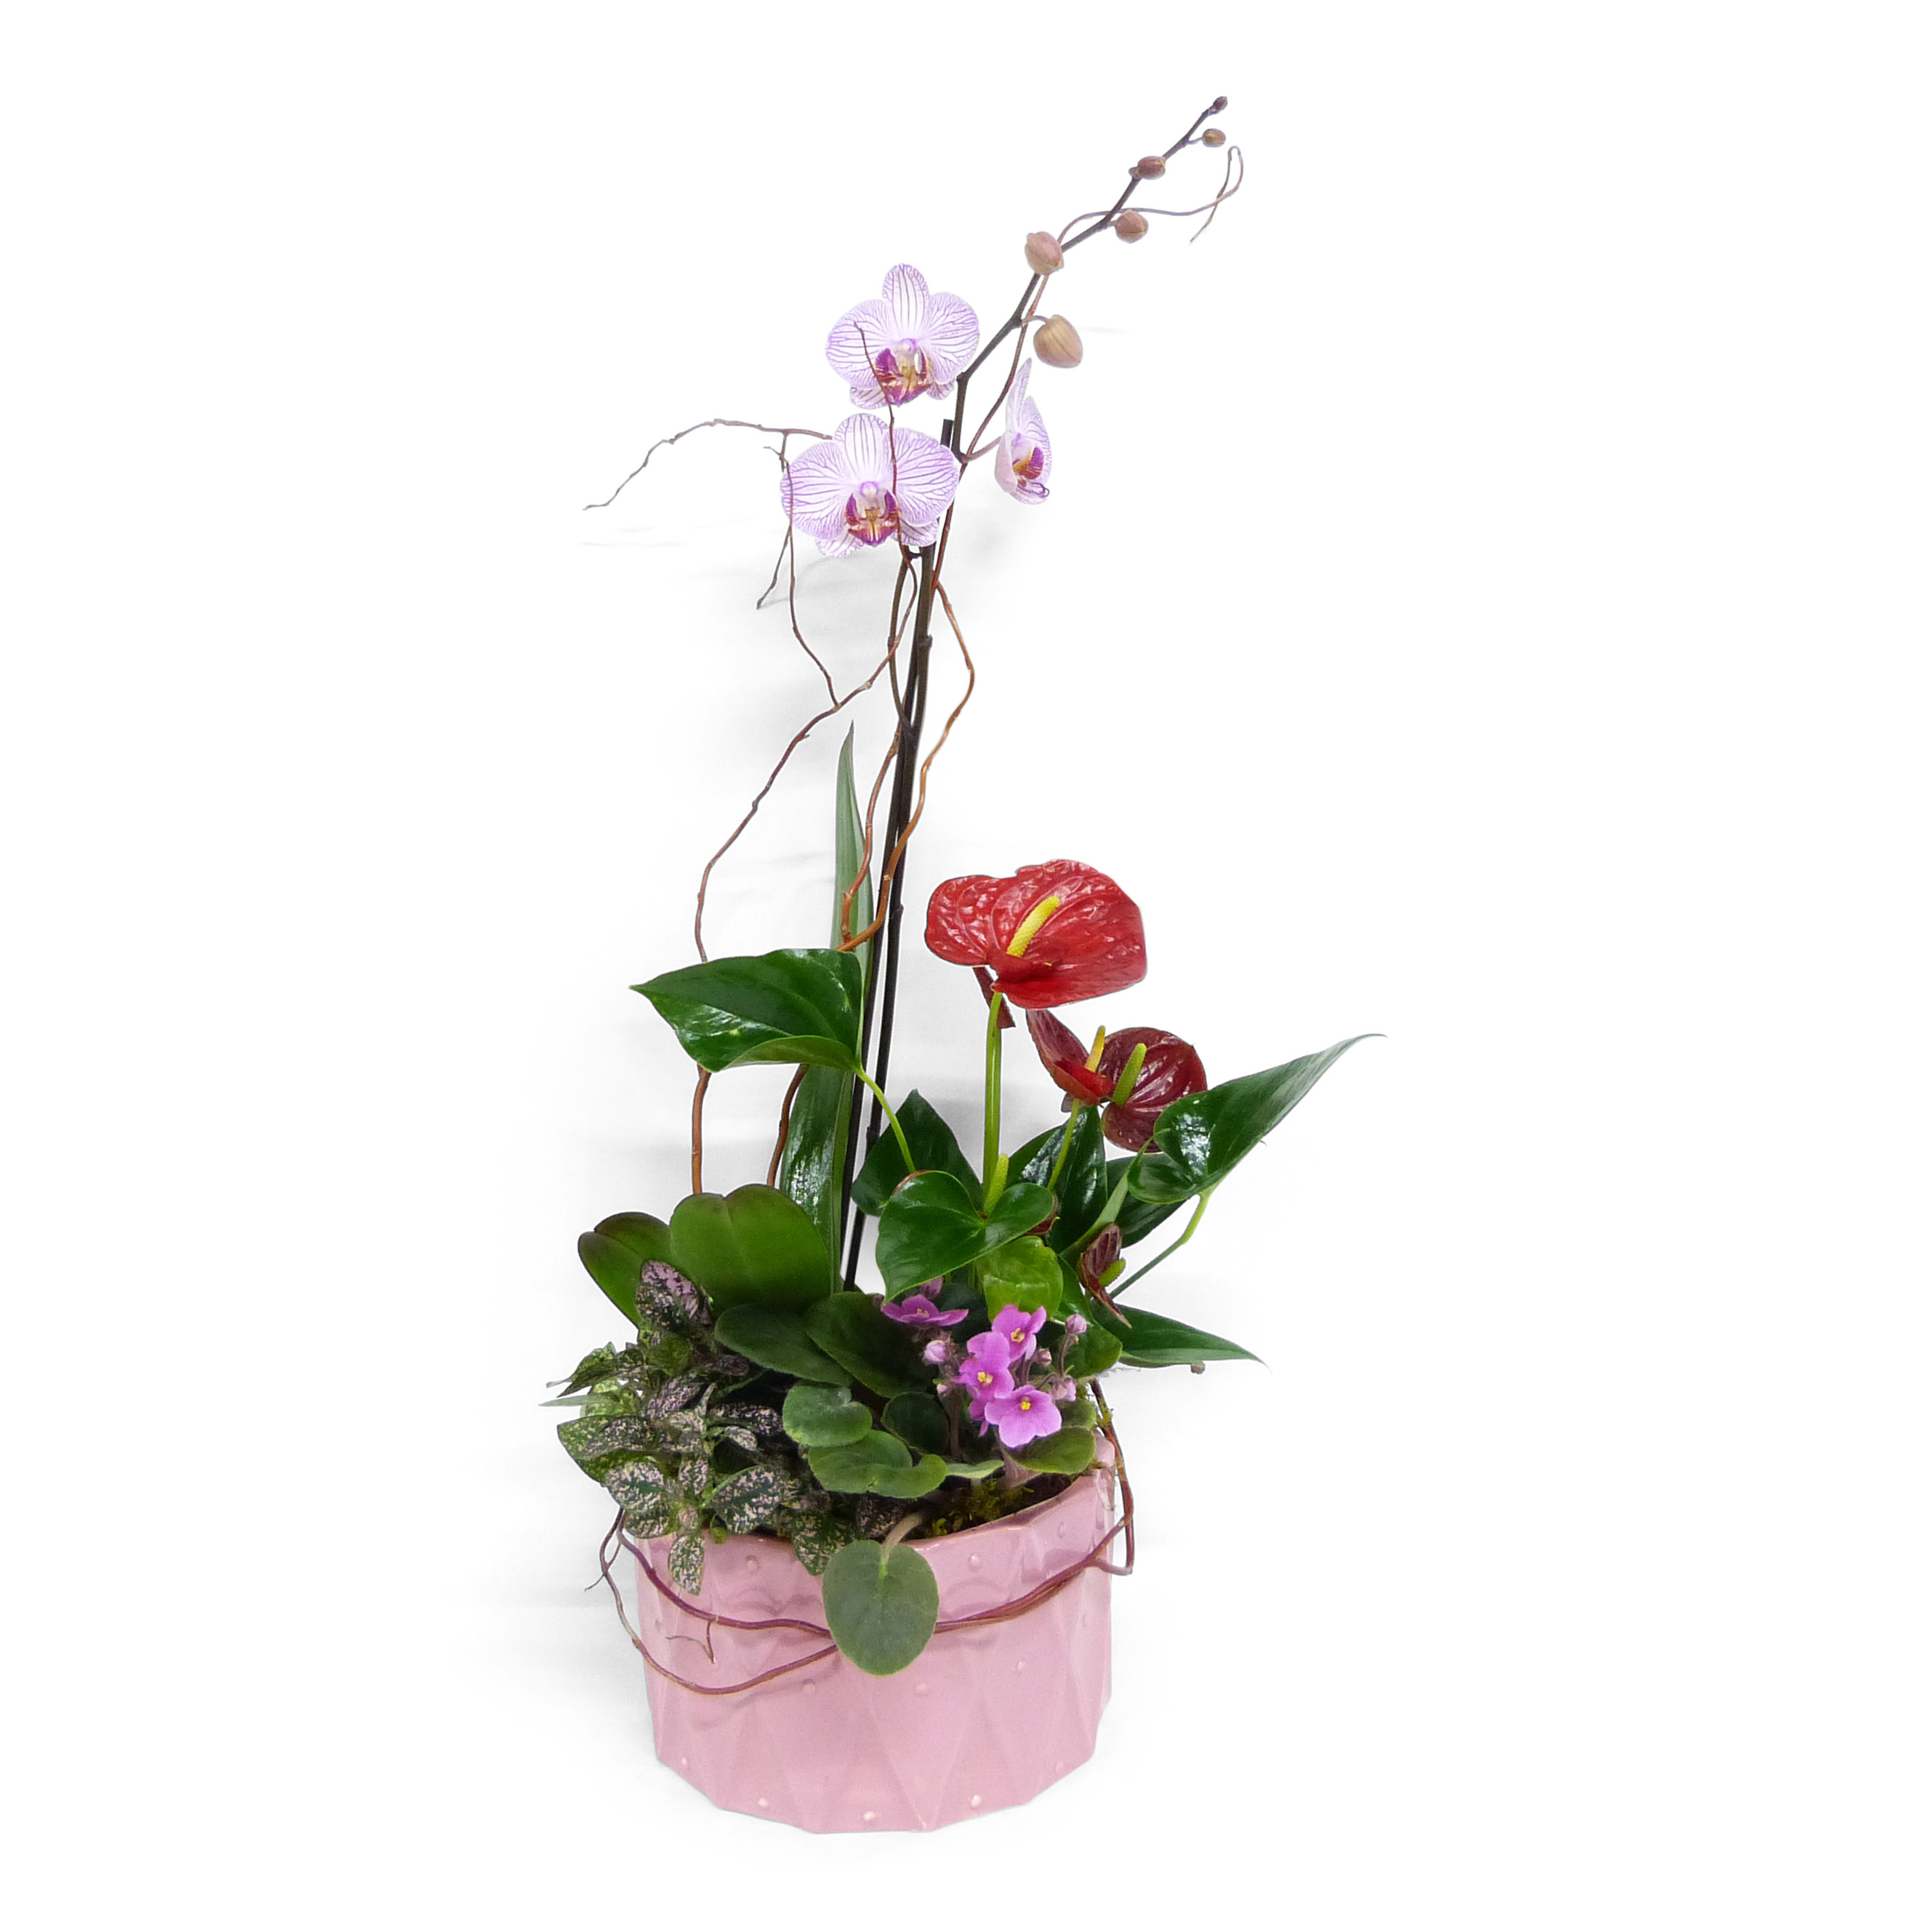 Bf 458 Blooming Planter Bell Flowers Blog